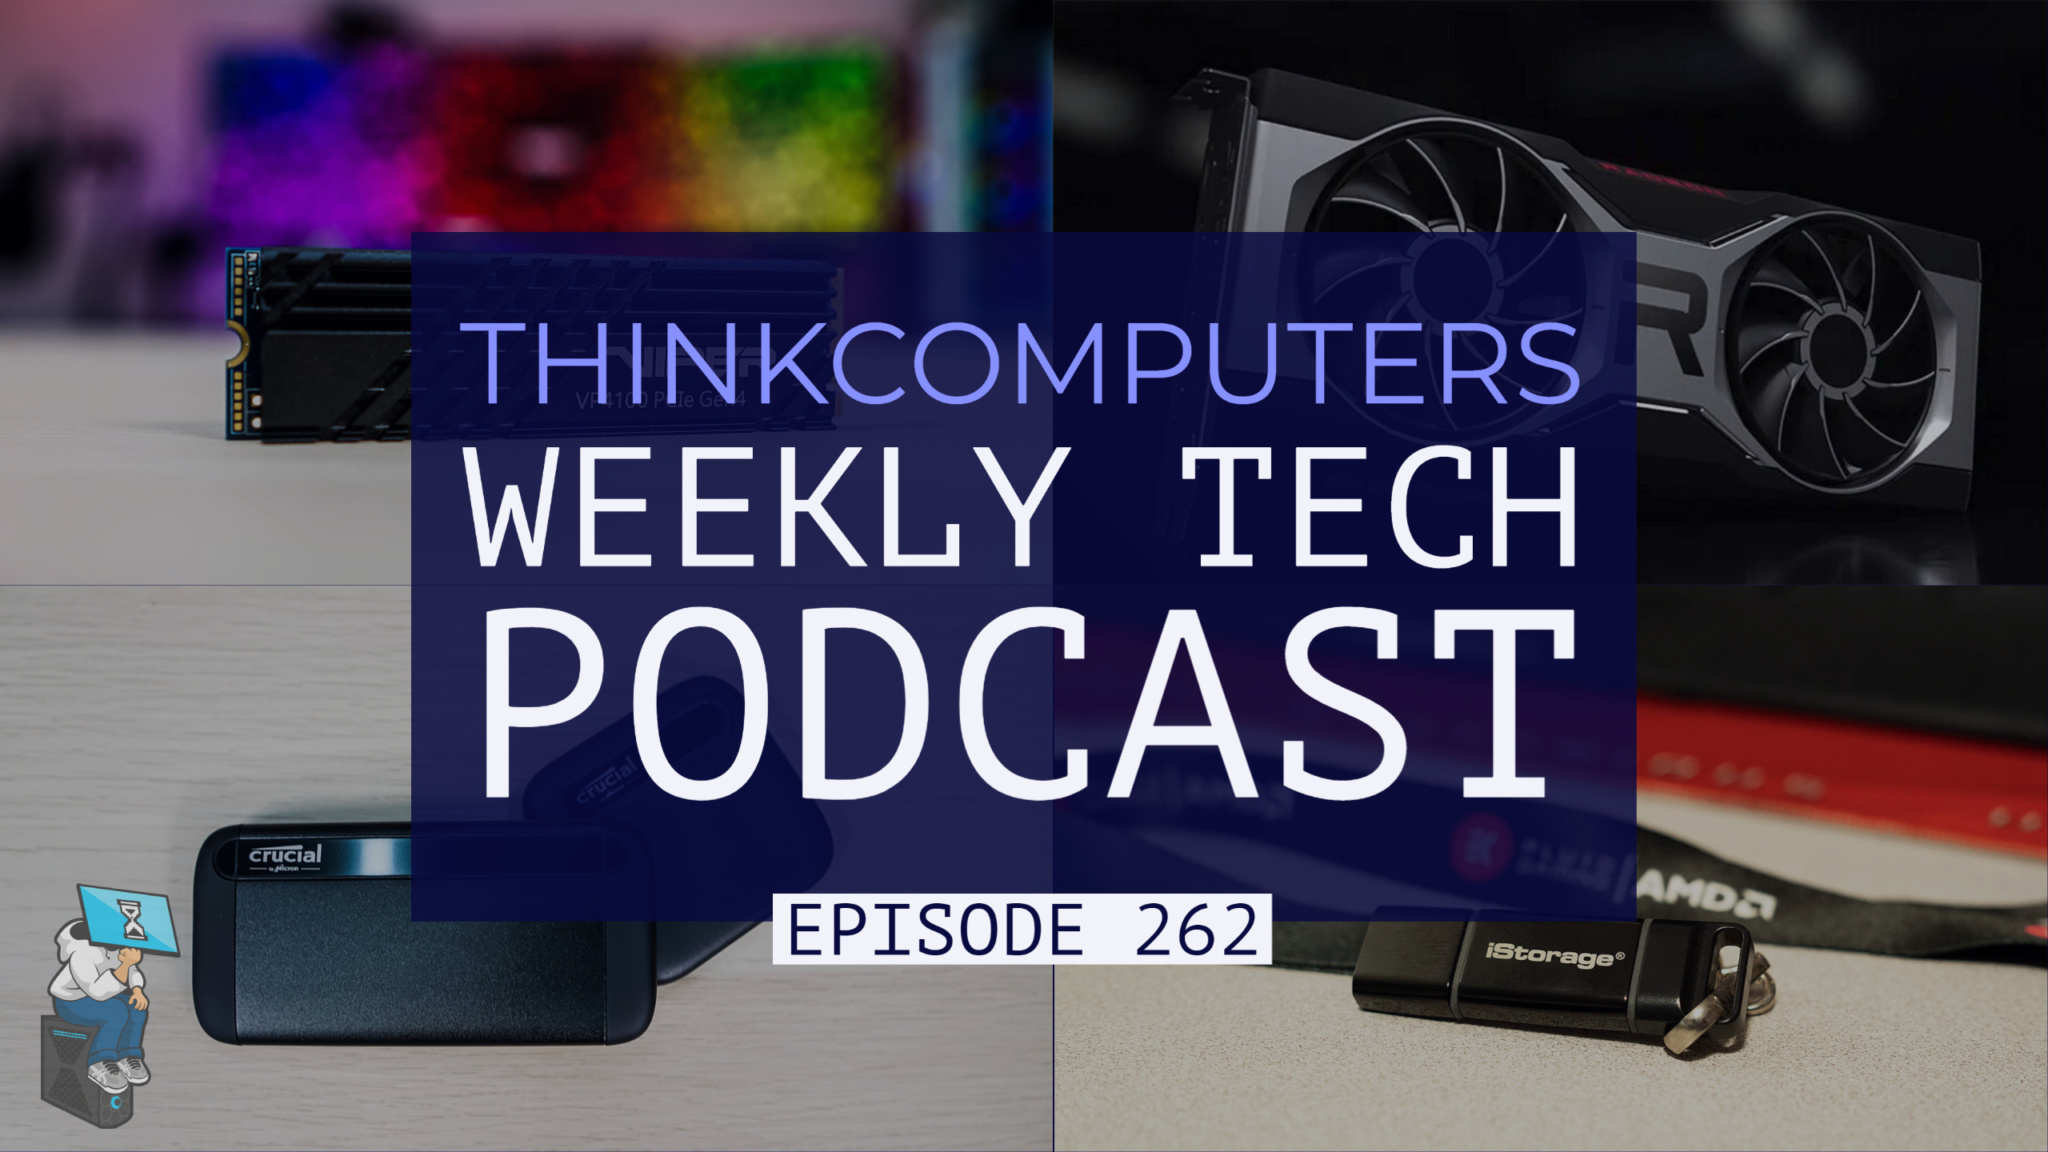 ThinkComputers Podcast #262